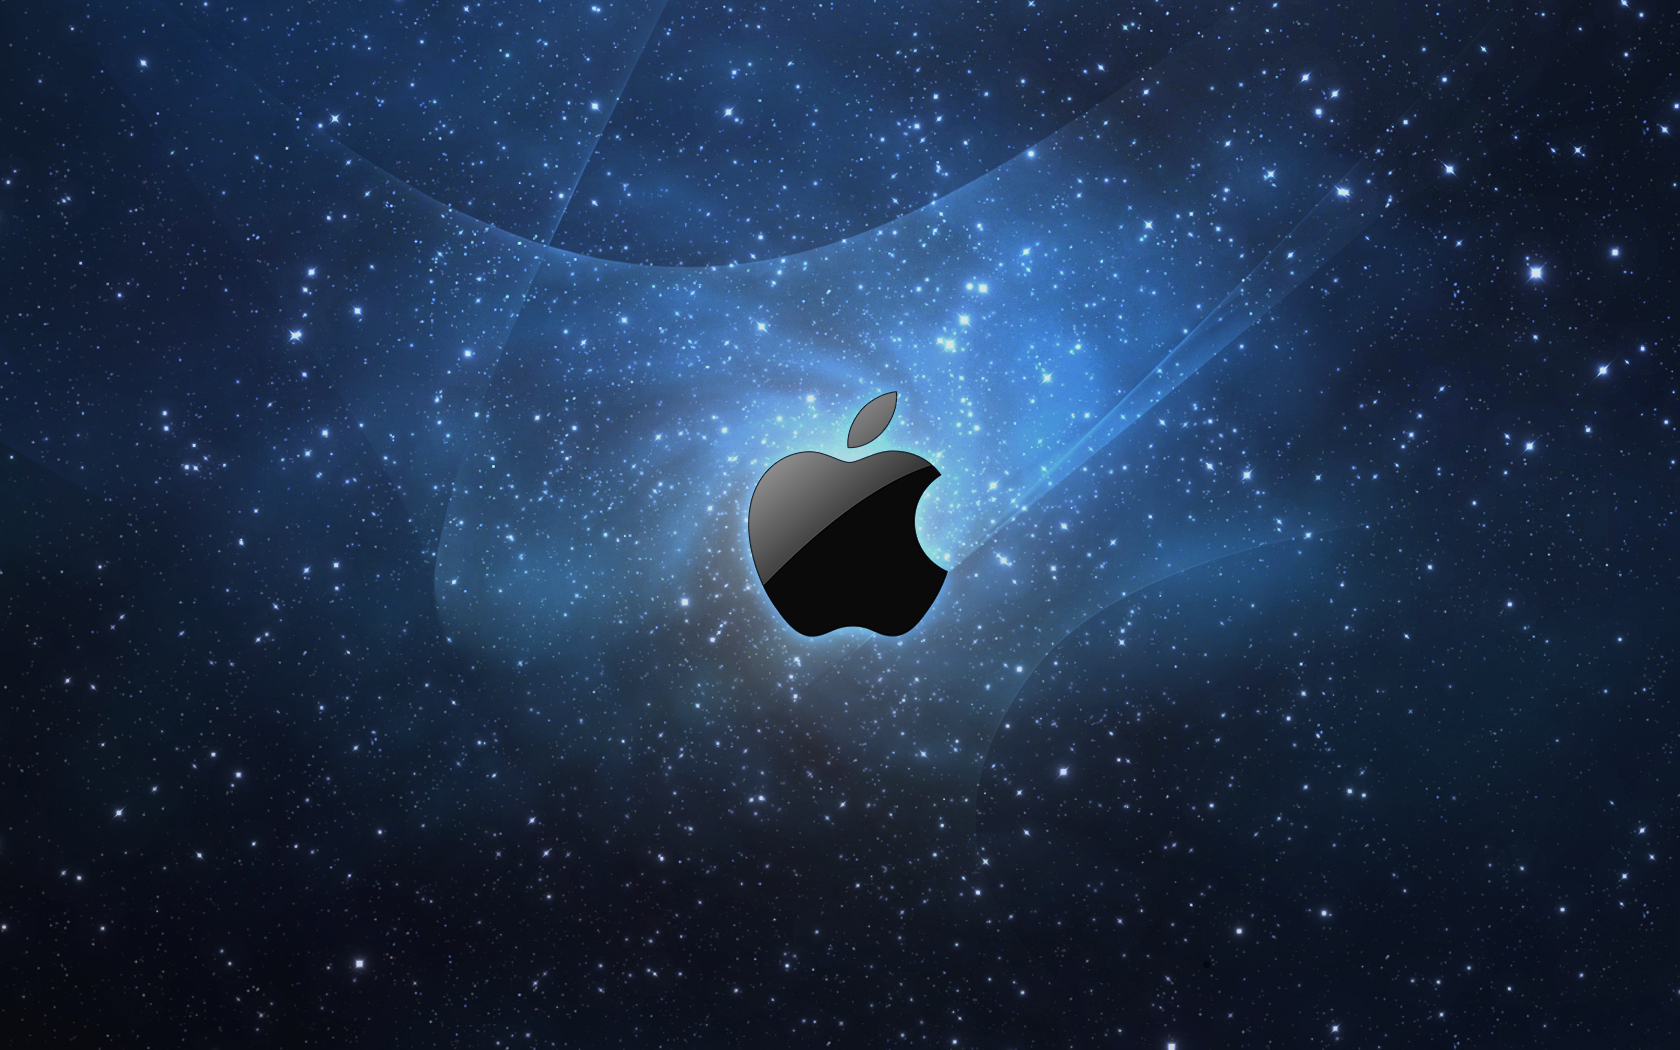 1680x1050 stars and apple desktop pc and mac wallpaper